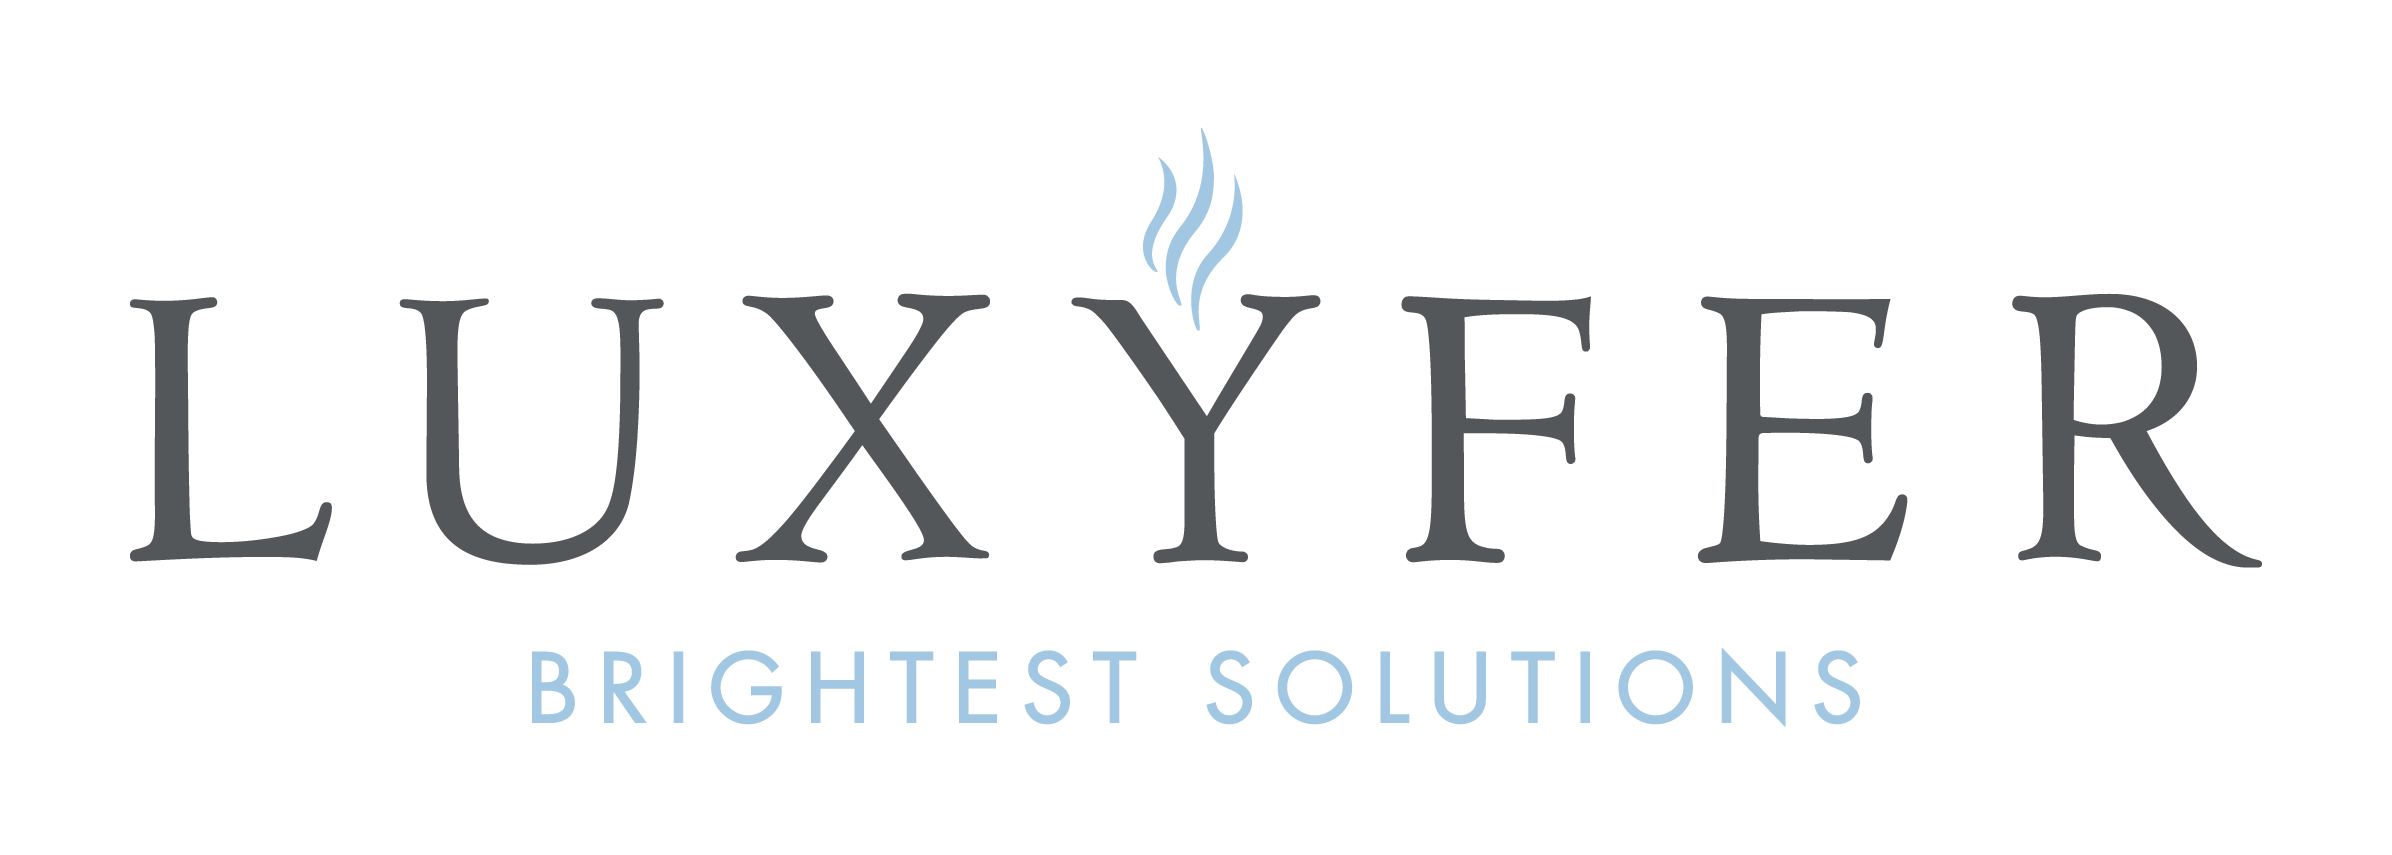 Logo Luxyfer Brightest Solutions